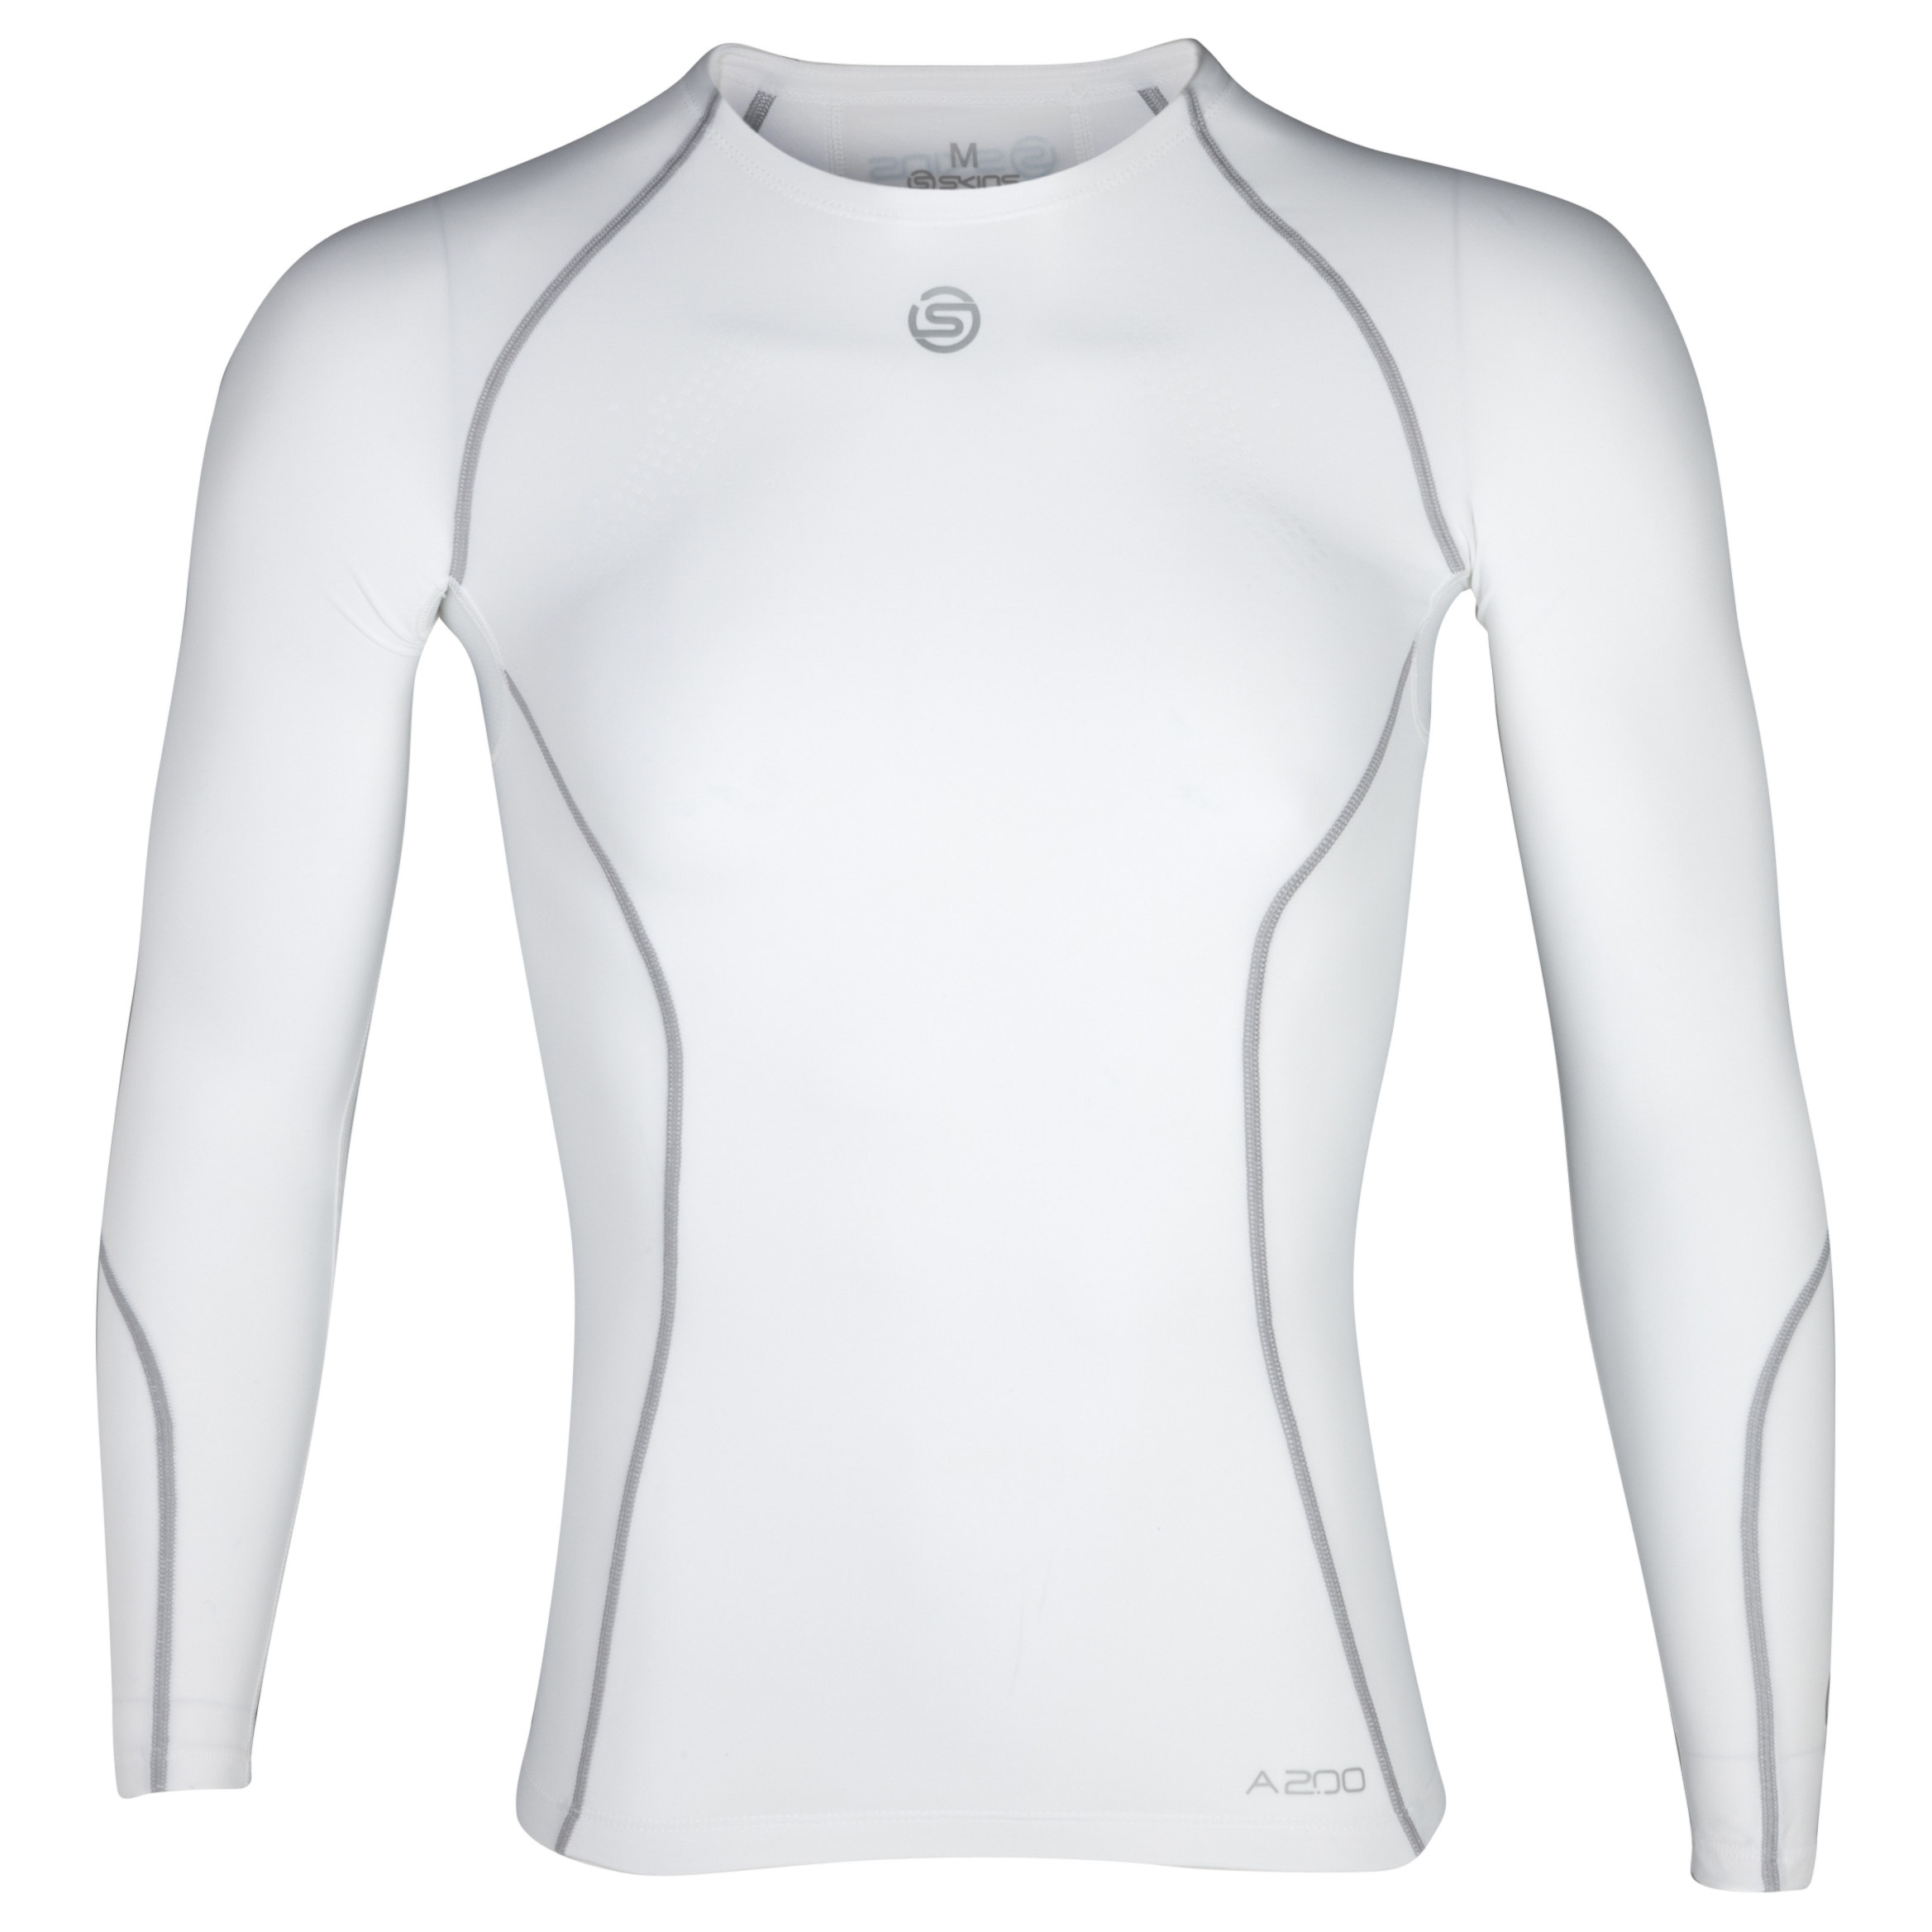 Skins A200 Long Sleeve Top - White